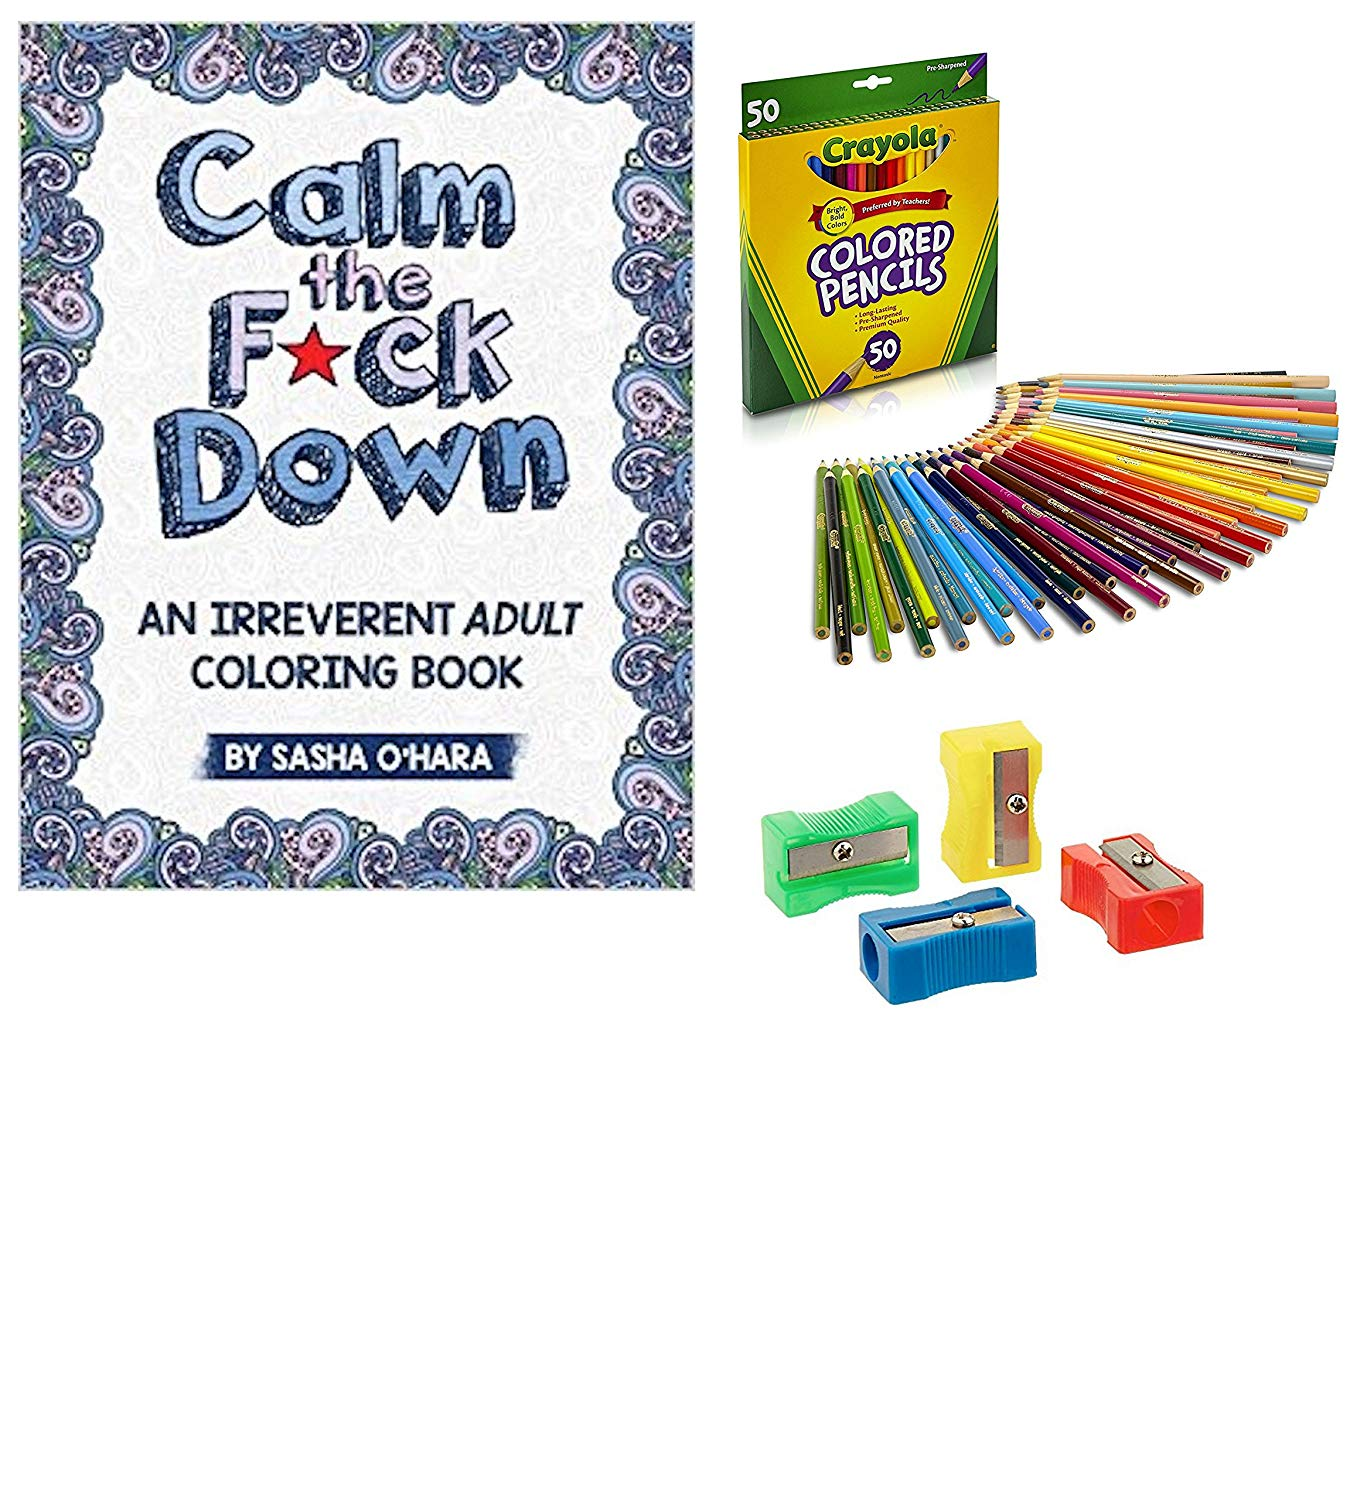 Adult Coloring Books Bundle with 1 Calm the Fck Down: An Irreverent Adult Coloring Book, 1 Crayola Colored Pencils (50 Ct) and 1 Sharpener